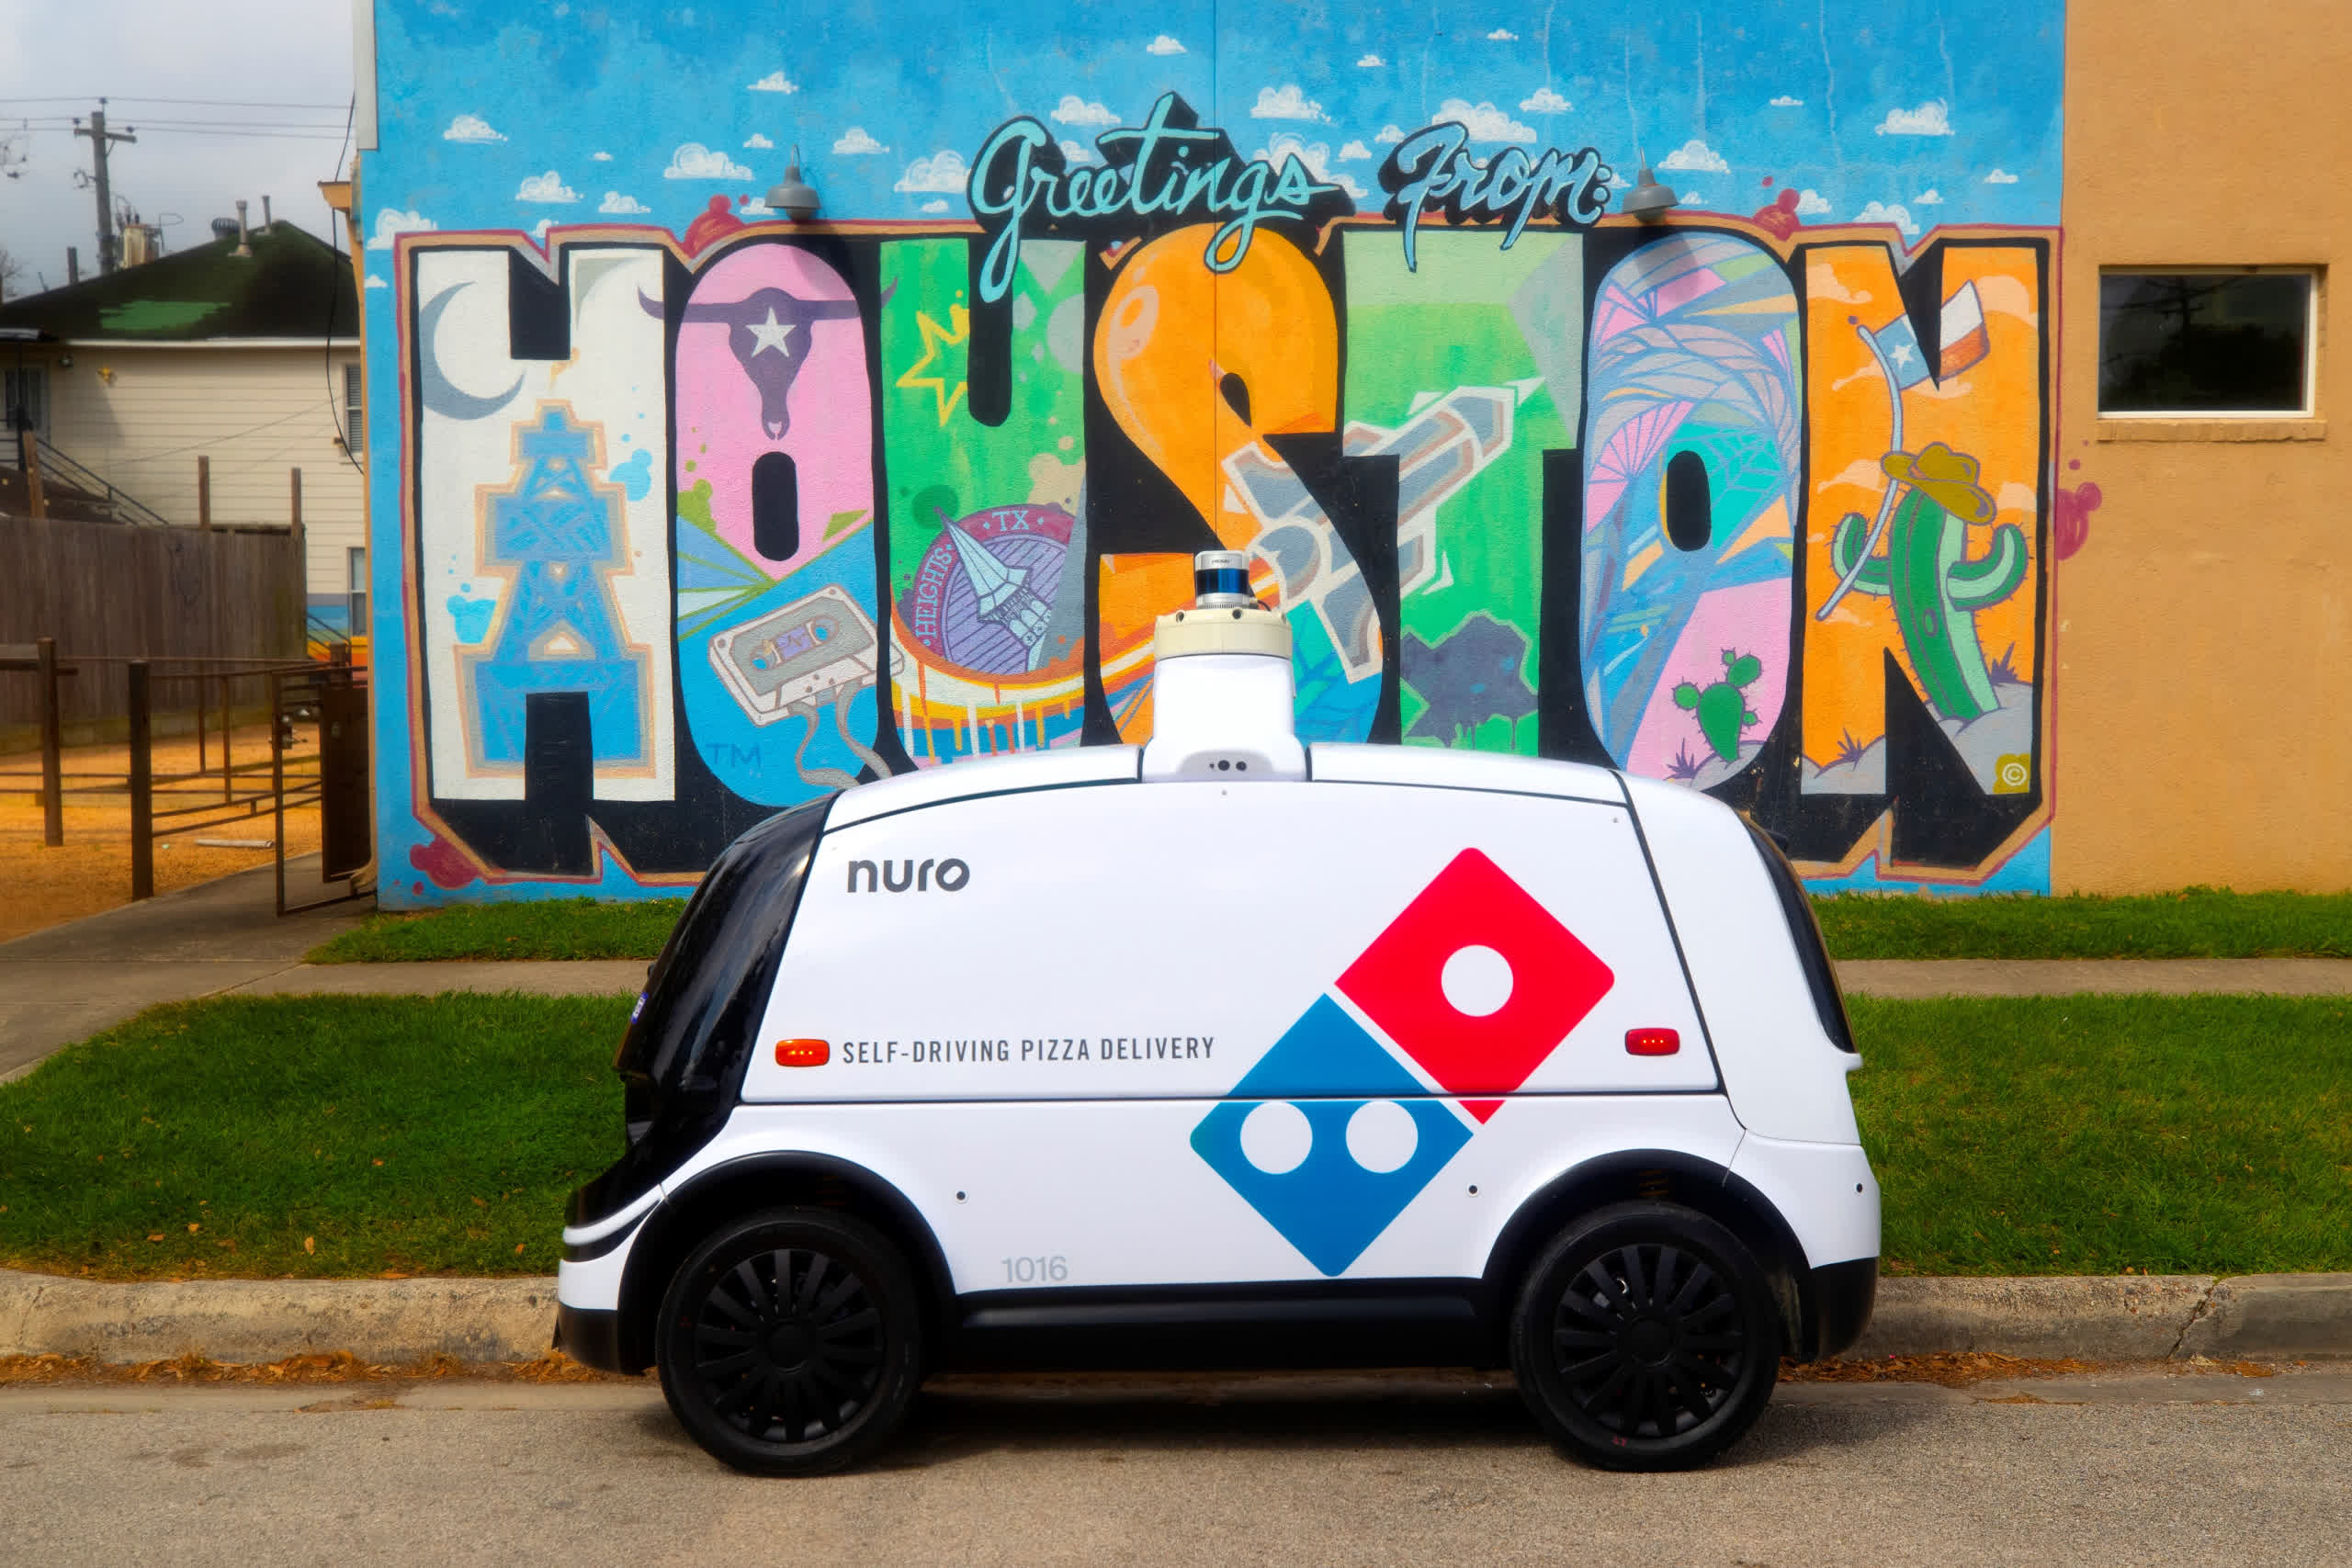 Domino's starts self-driving pizza delivery service with Nuro autonomous cars